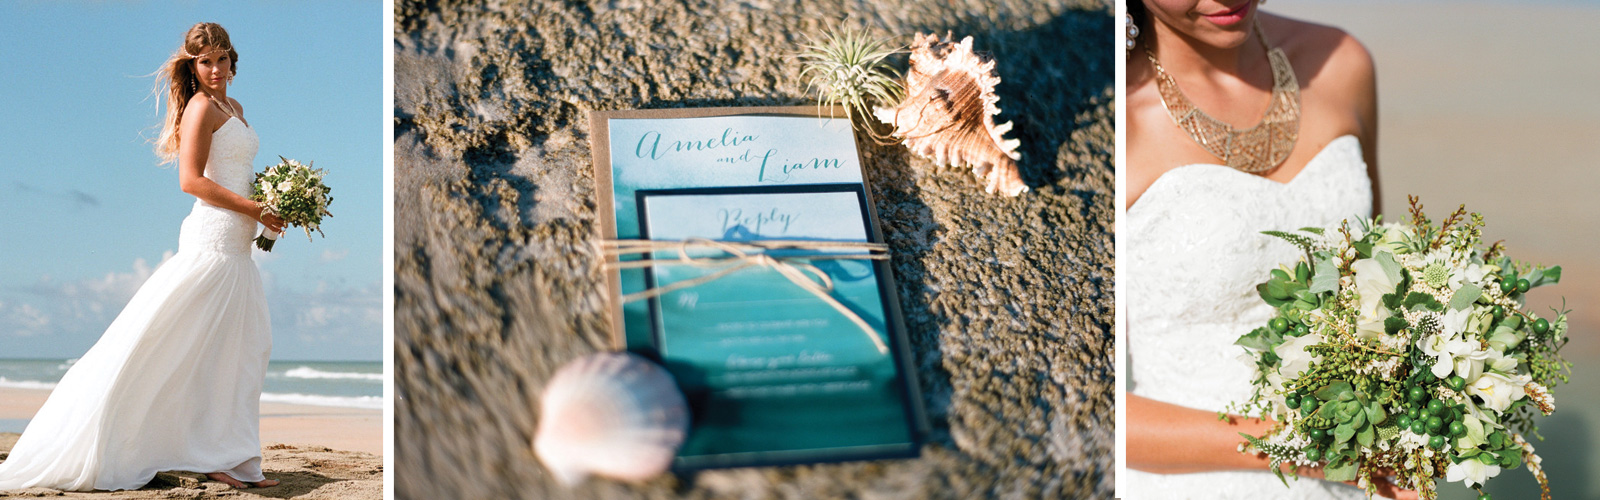 Rustic Ombré Watercolor Destination Wedding Invitation Florida